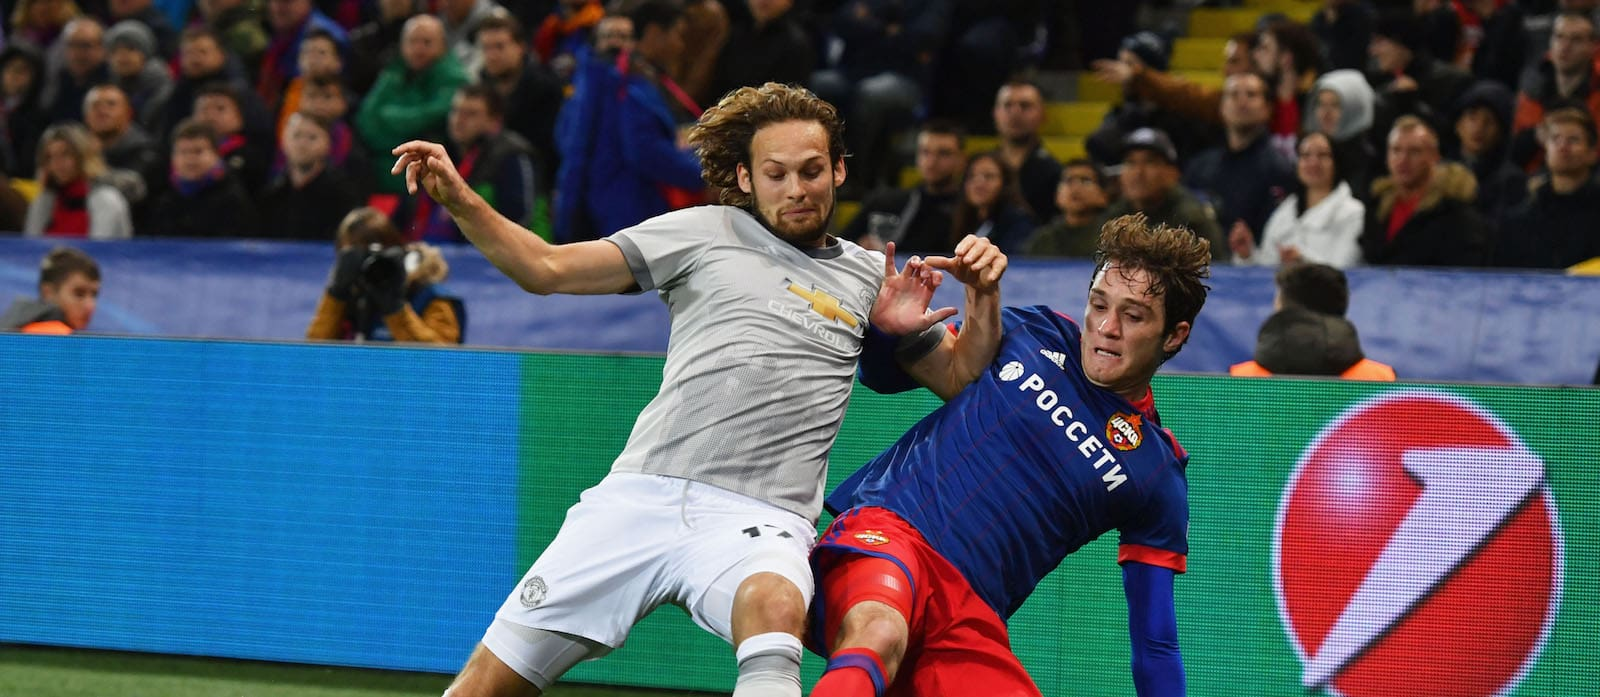 Daley Blind: I had a good relationship with Jose Mourinho at Manchester United